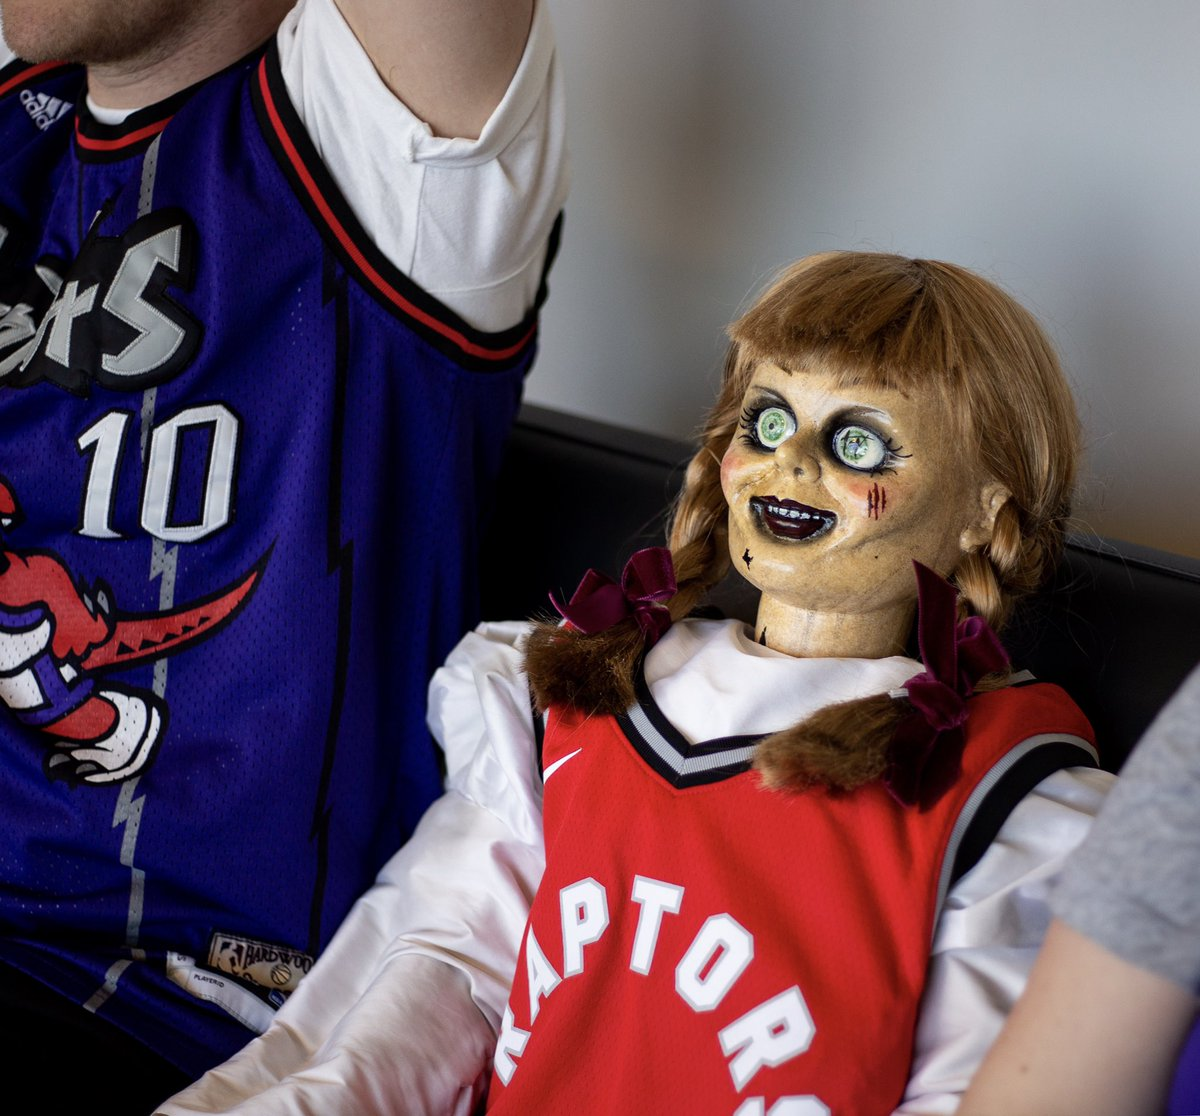 Possession of the ball? Annabelle knows all about possession… #HavocTourCanada @annabellemovie